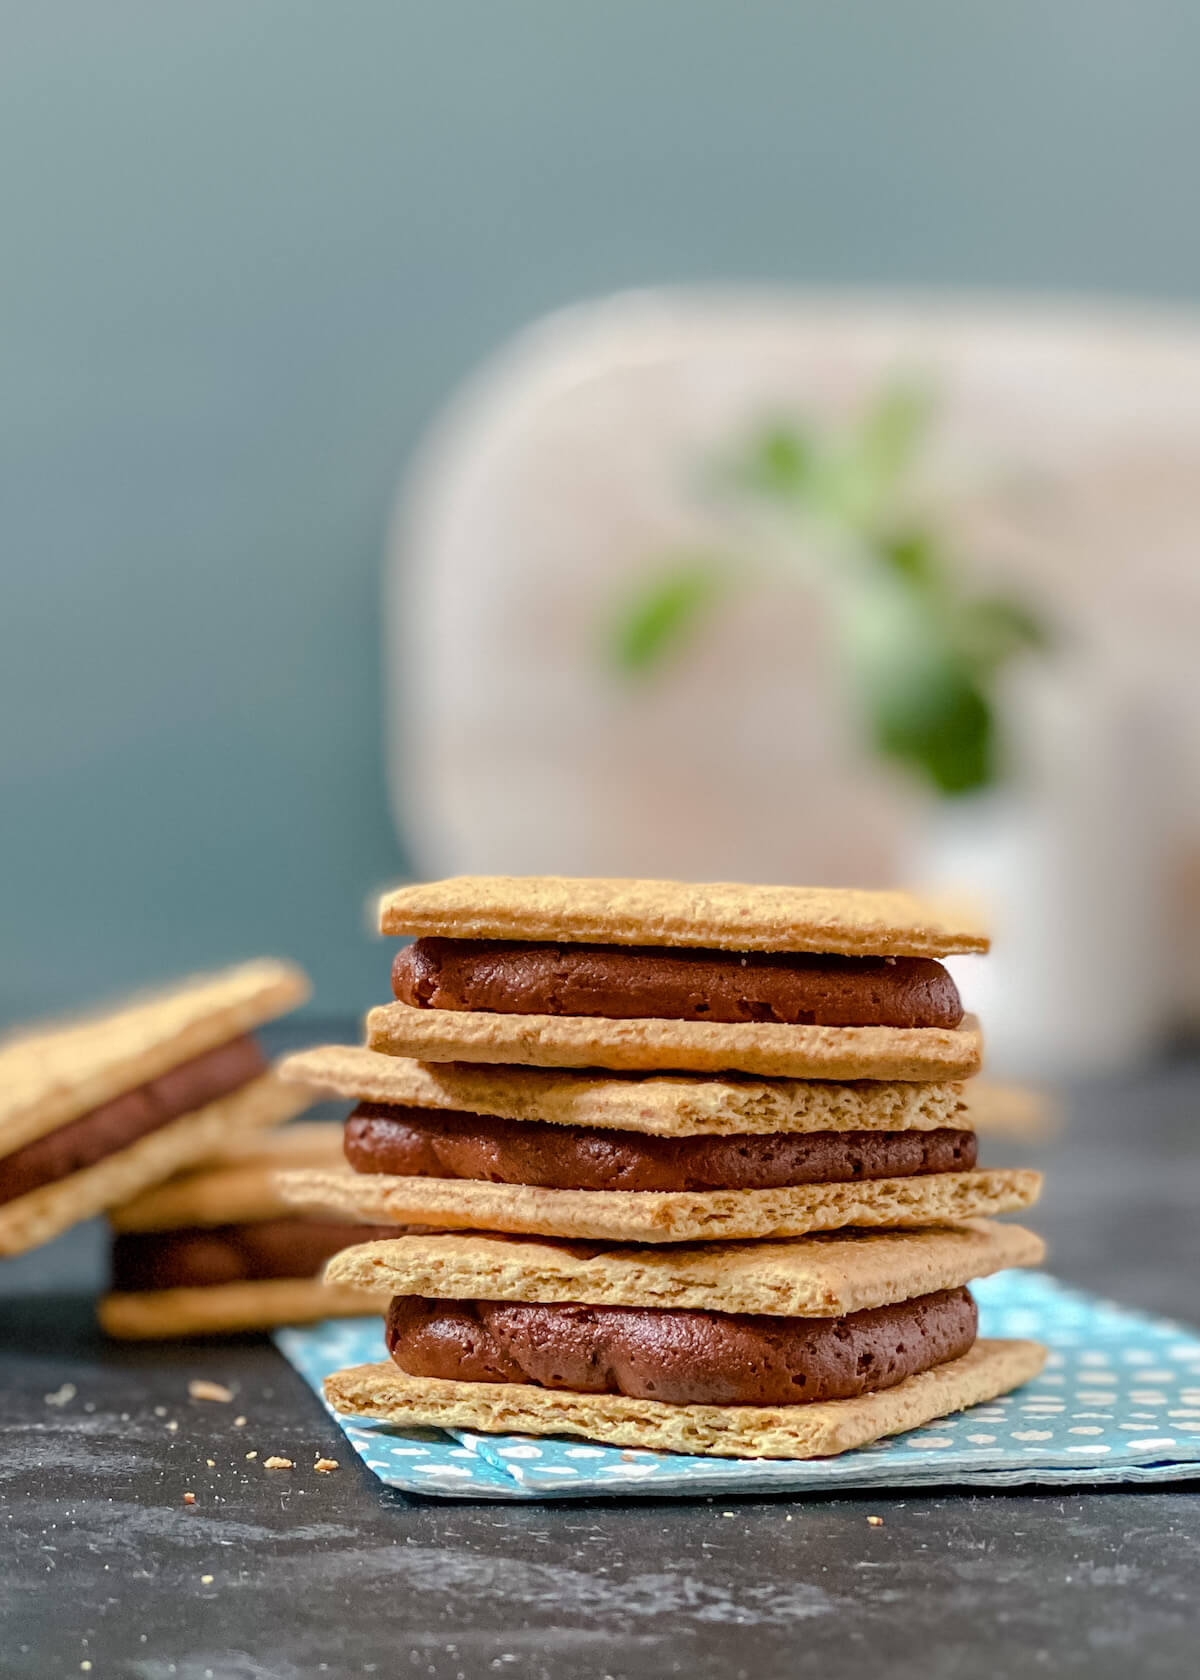 graham crackers stacked on a napkin with chocolate frosting filling